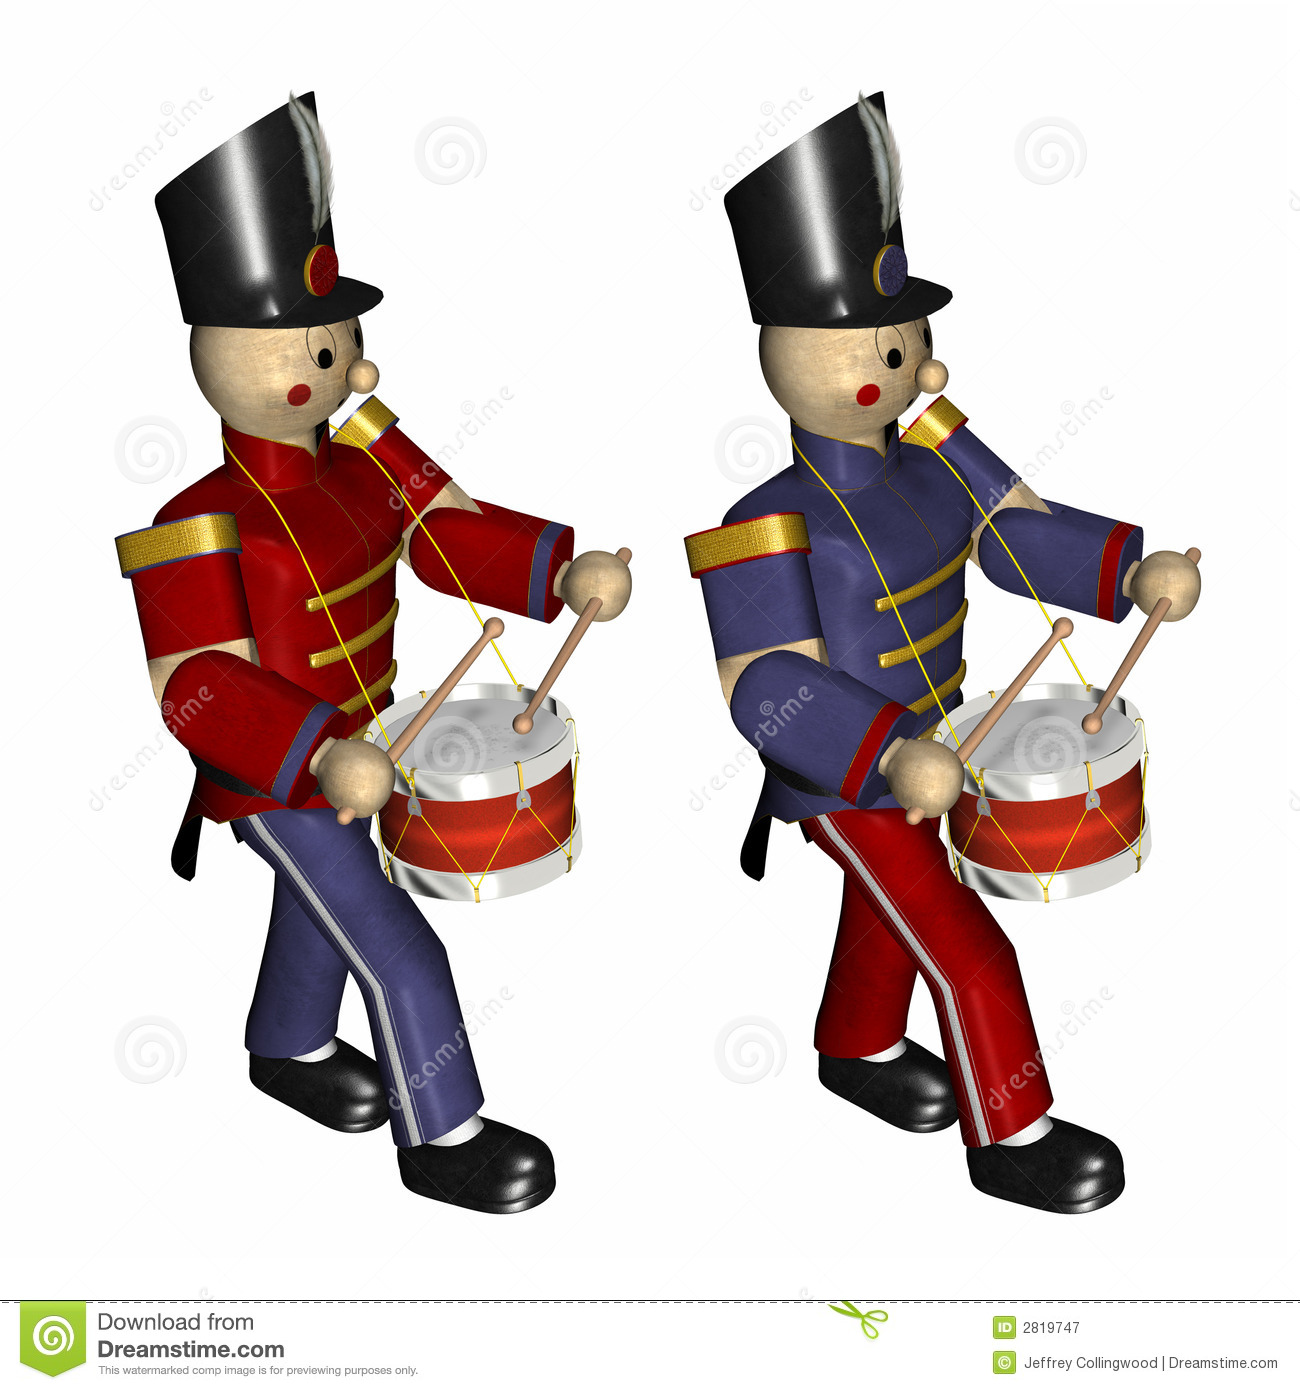 Christmas Toy Soldiers Royalty Free Stock Photography - Image: 2819747